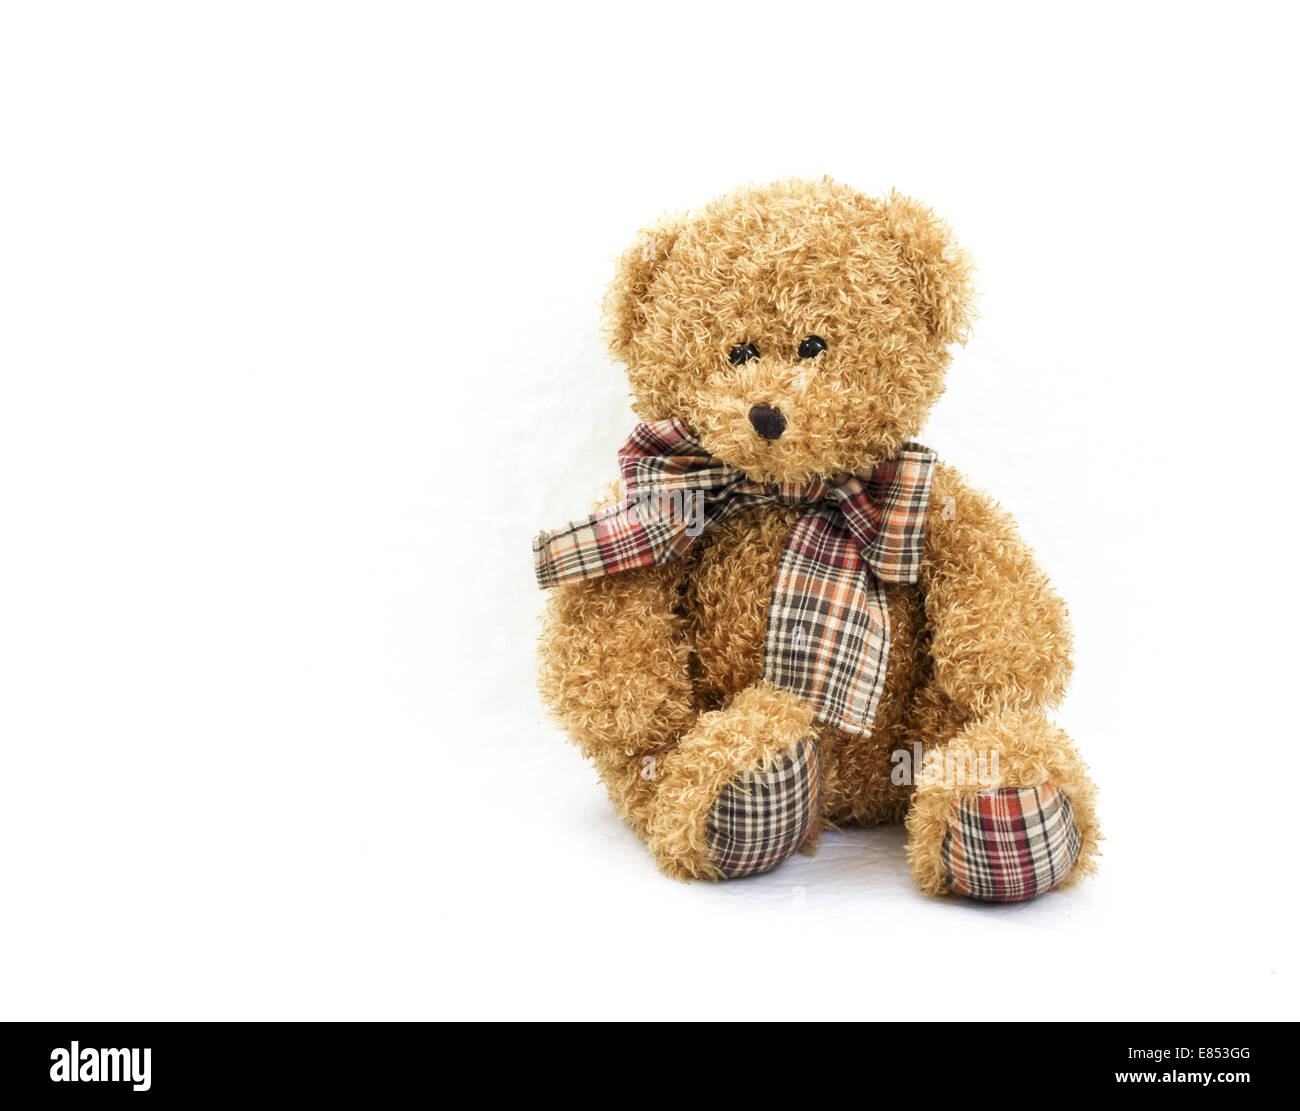 Teddy Plaid Teddy Bear Against A White Background With Plaid Bow Tie And Plaid